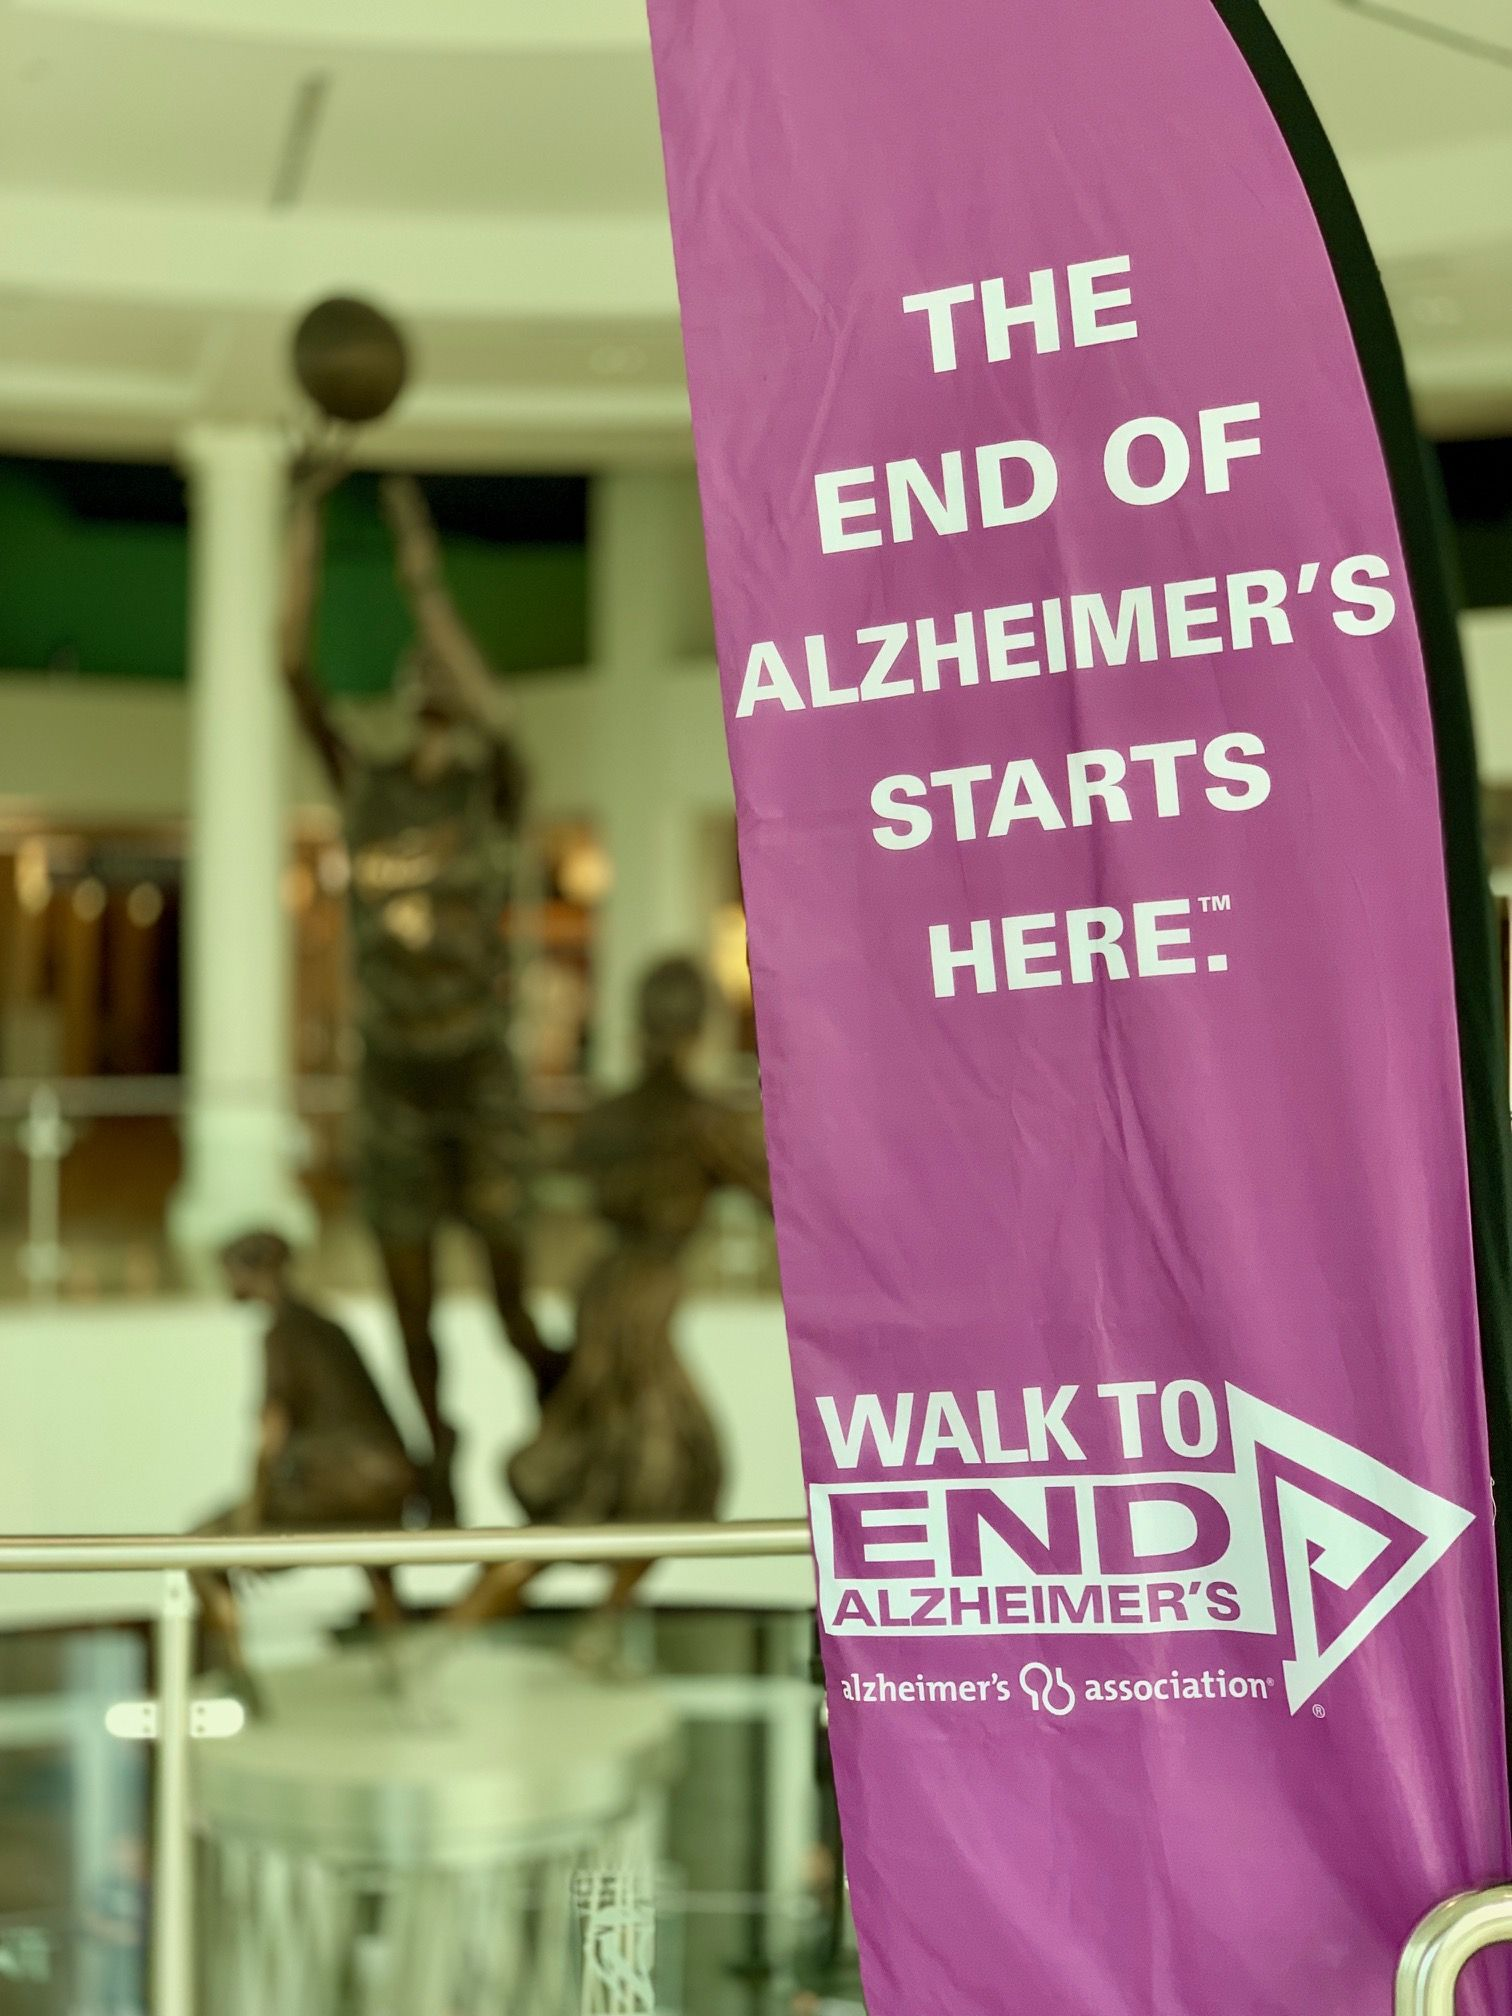 Home Walk to end alzheimer's, Fame, Hall of fame